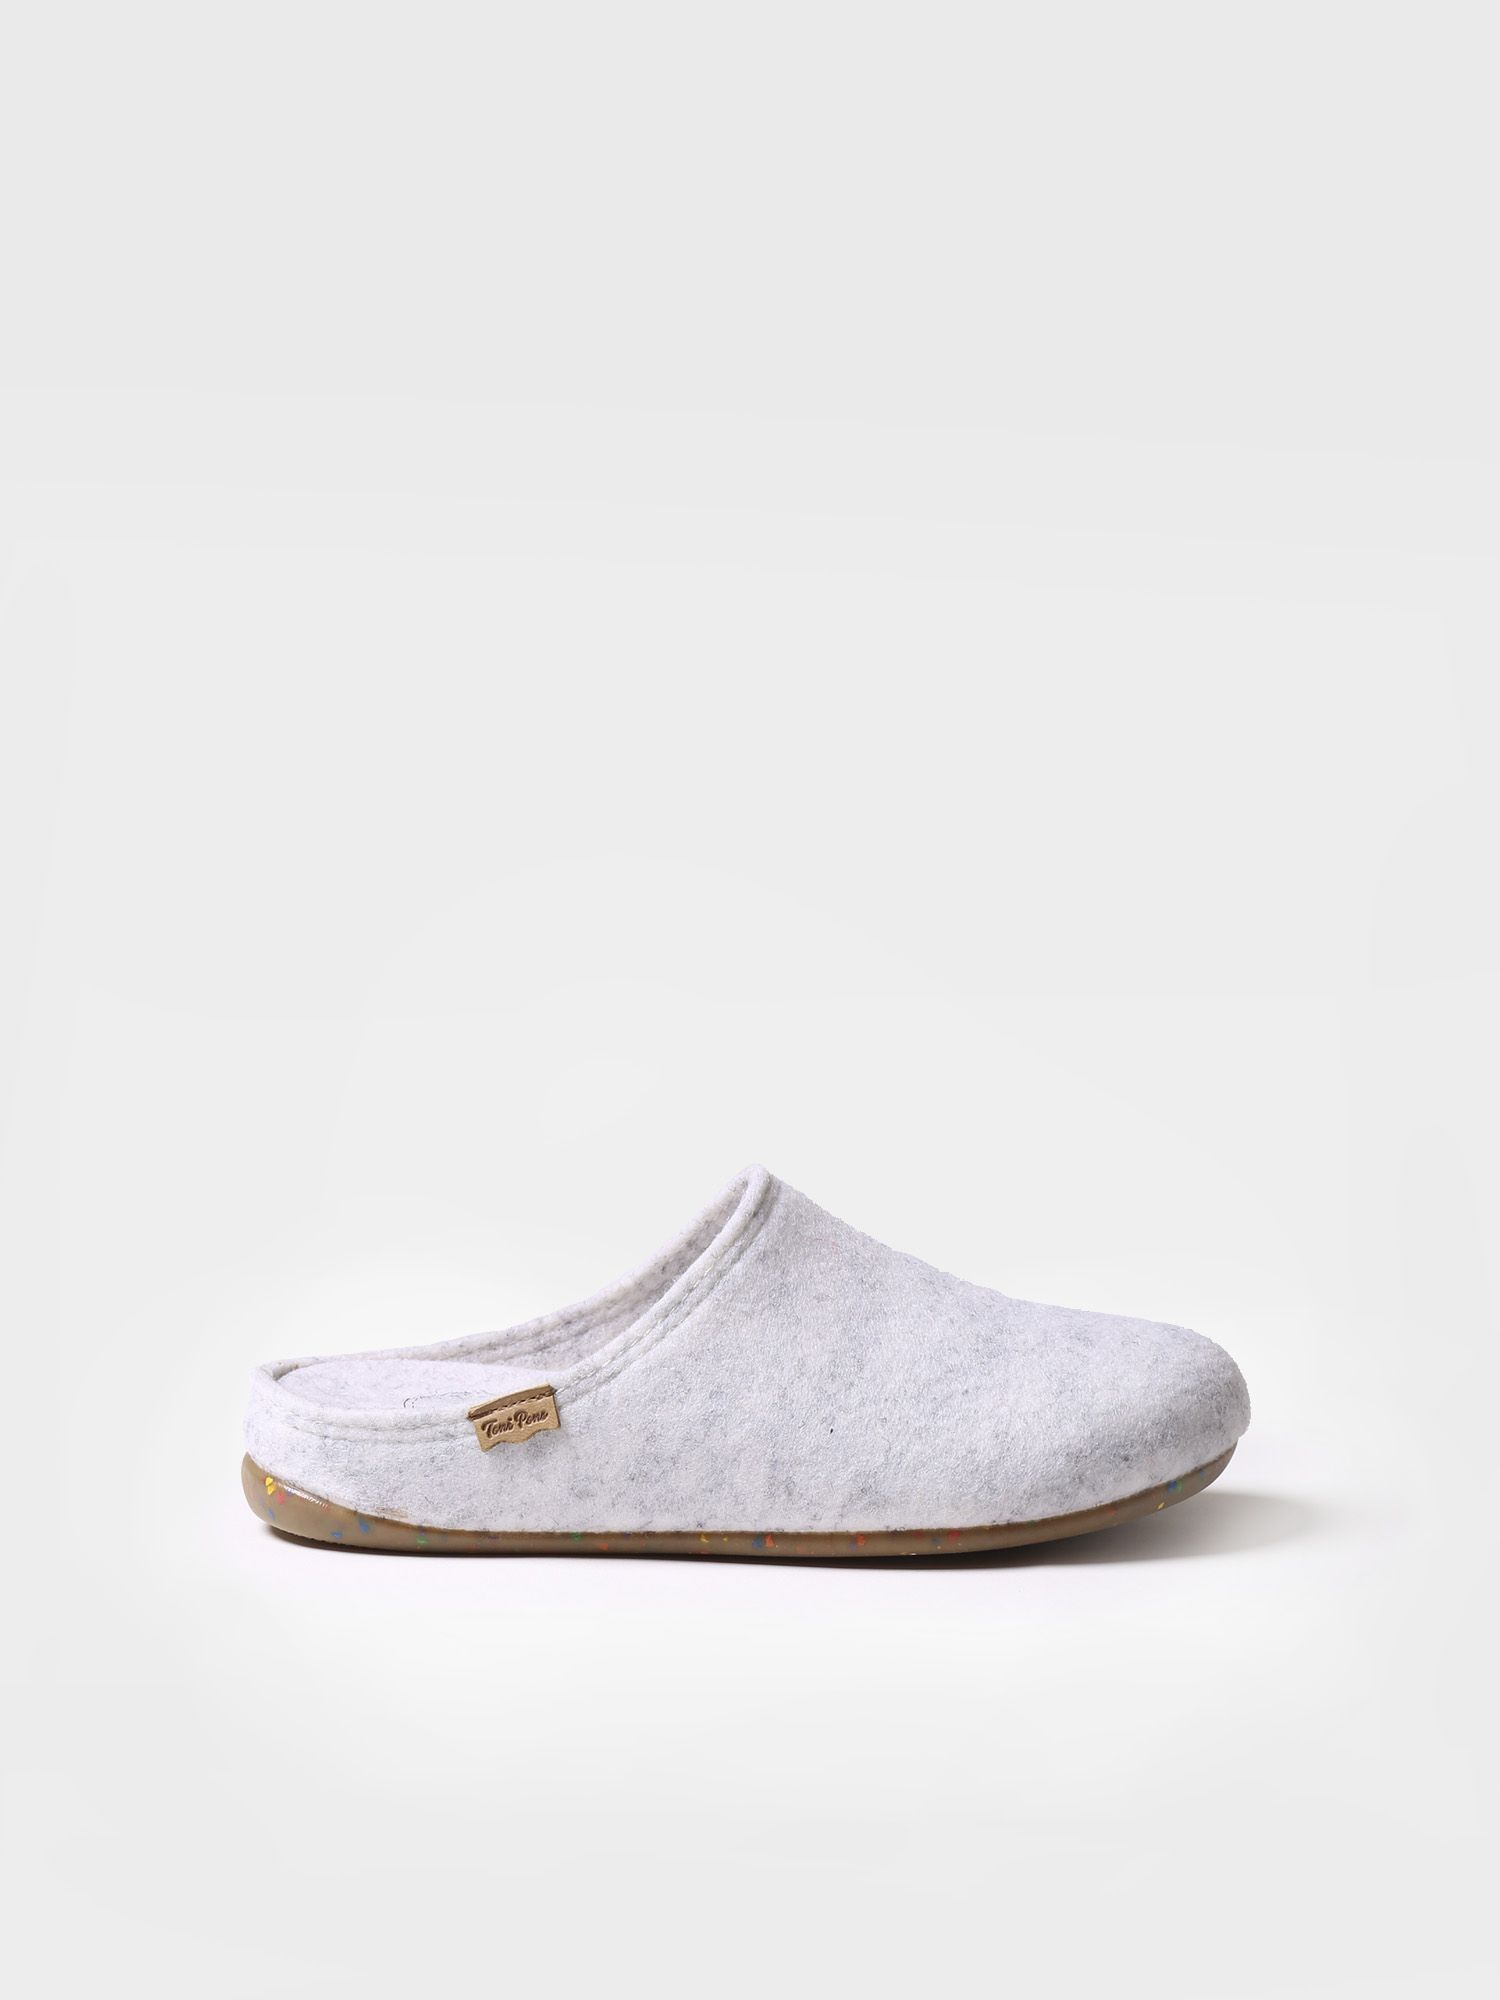 Slipper for woman made of recycled felt - MONA-FR